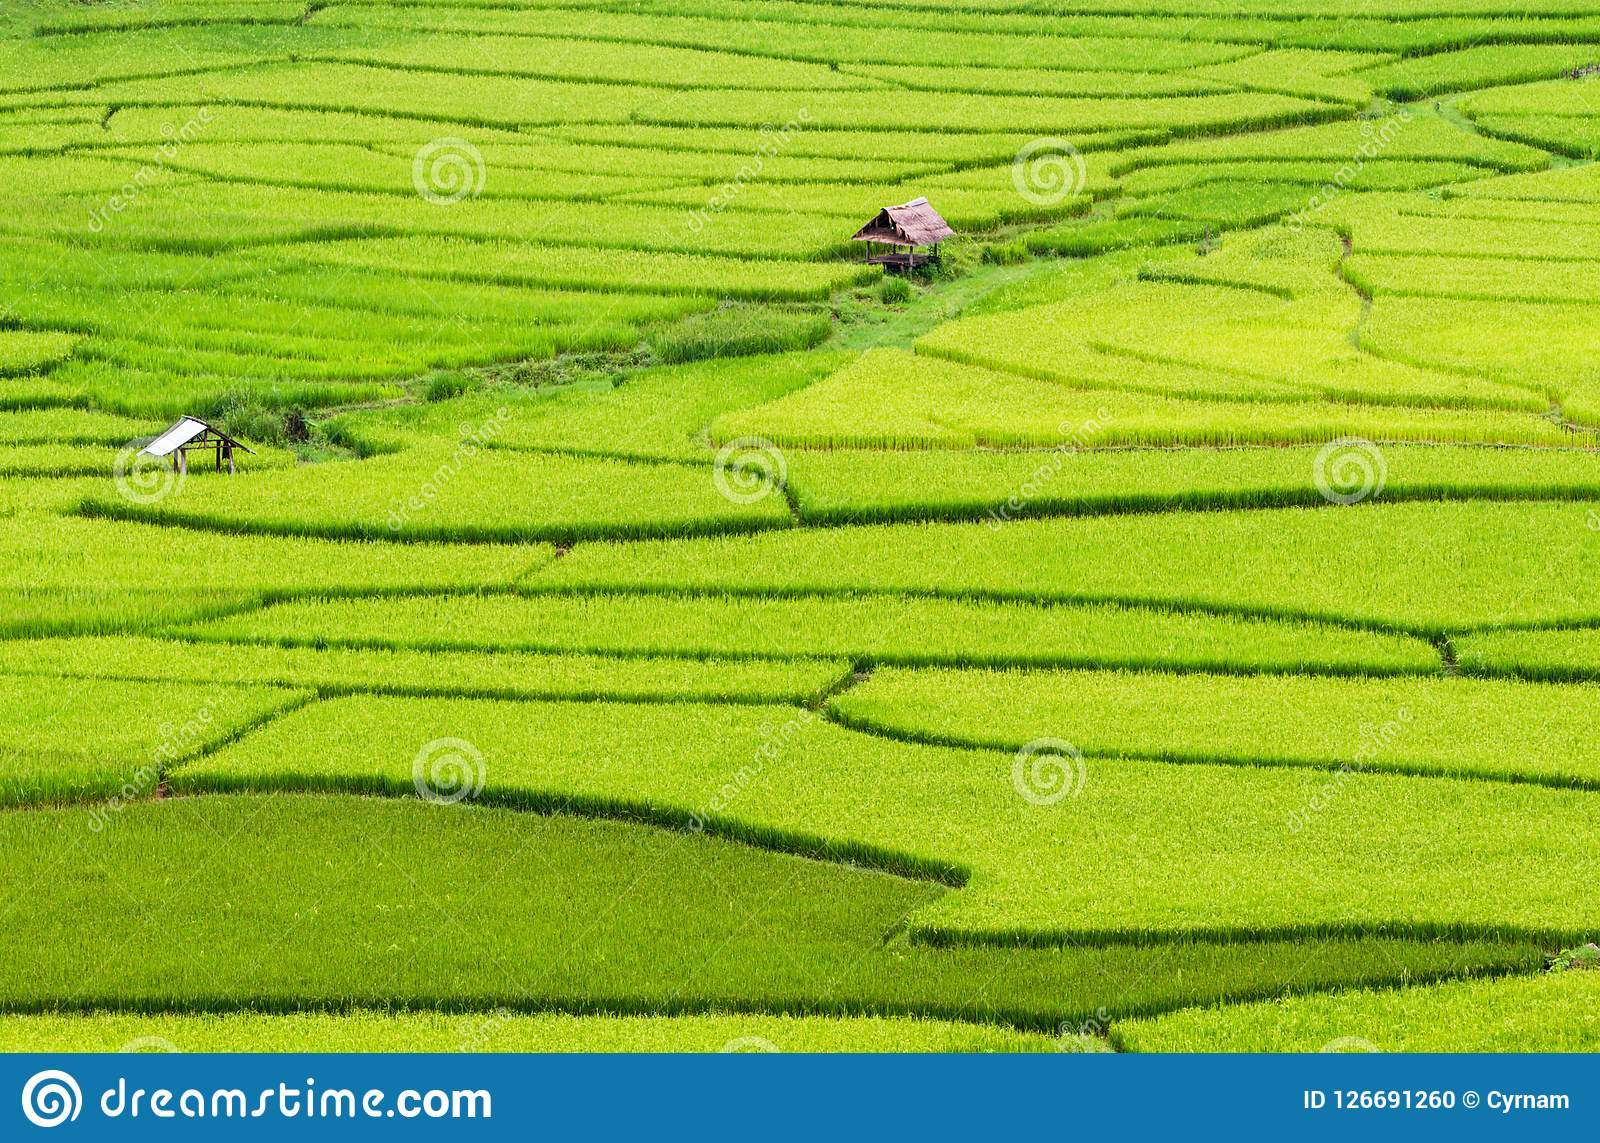 Beautiful And Picturesque Green Rice Paddy Field With ...